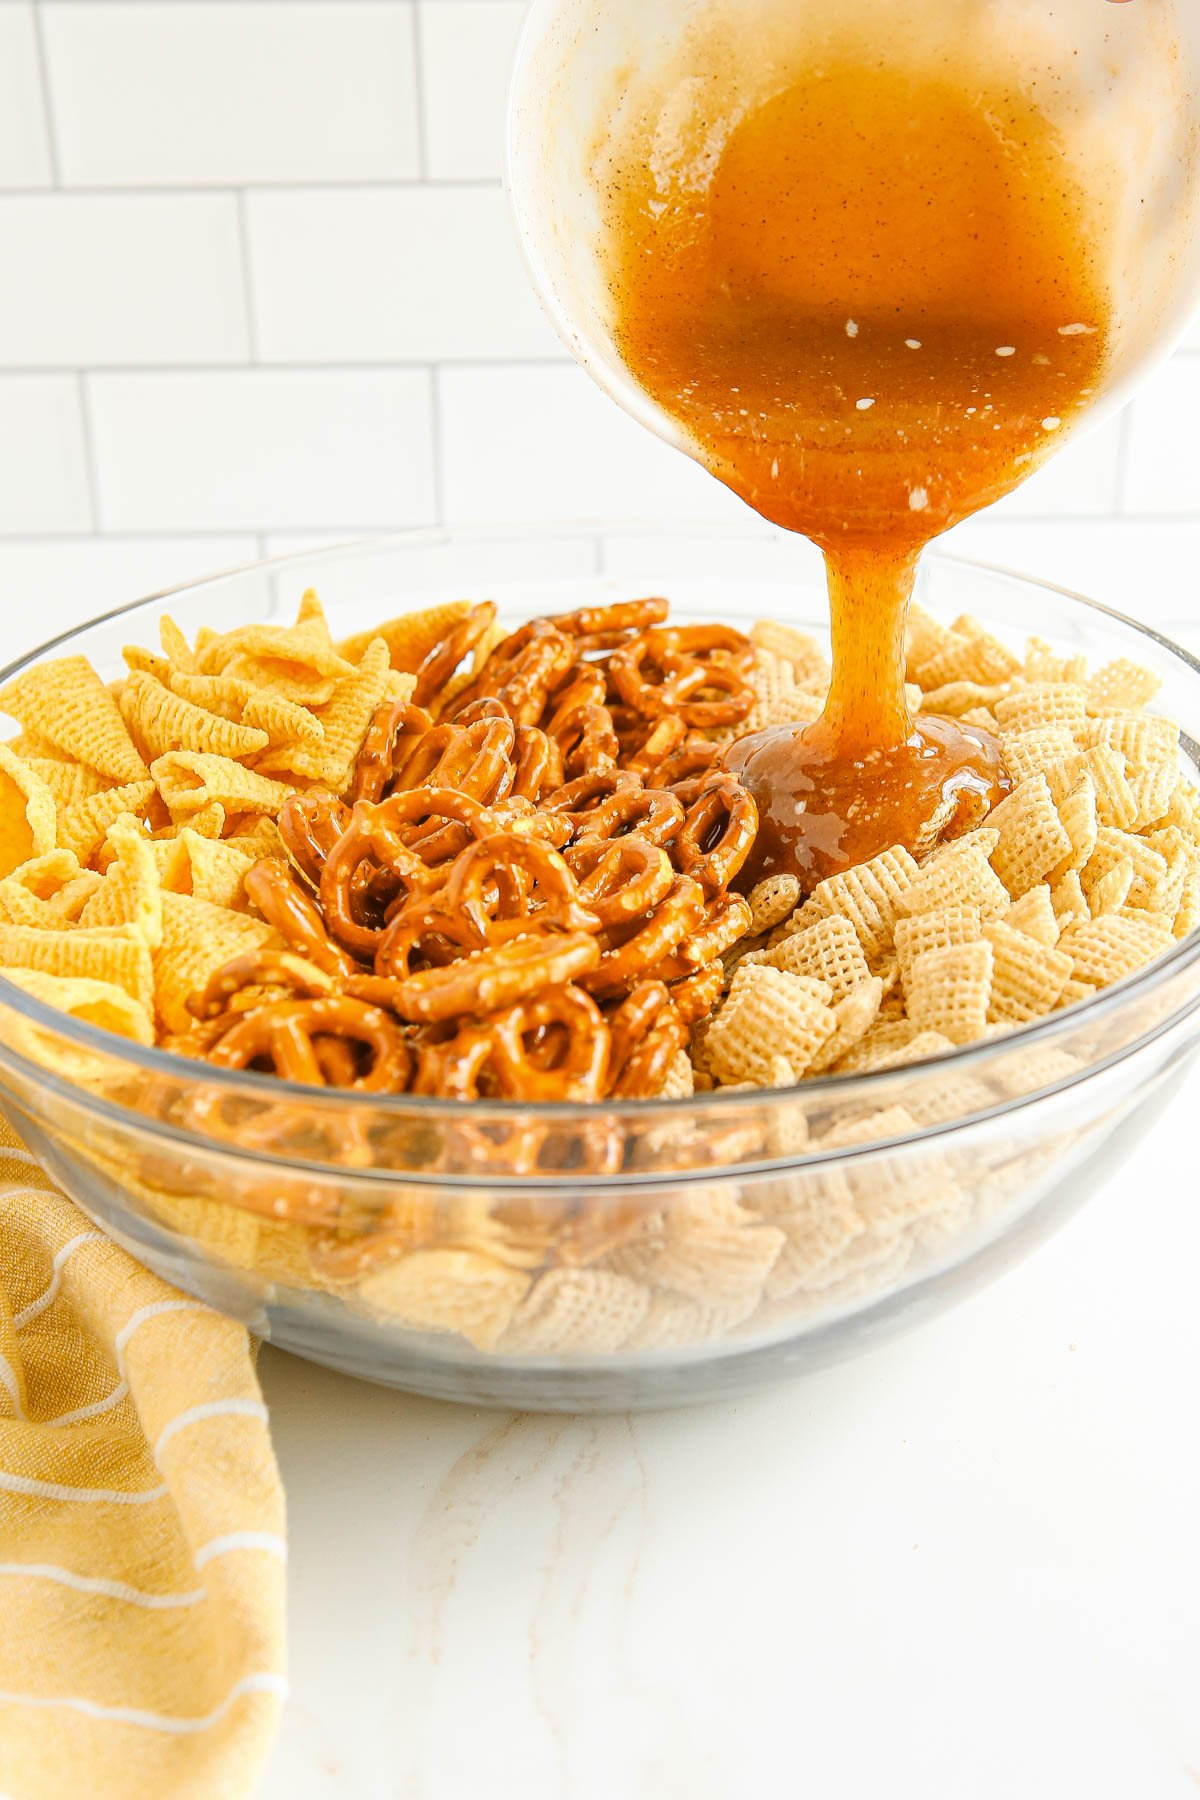 large glass bowl with bugles, pretzels and chex cereal, butter and brown sugar sauce pouring over